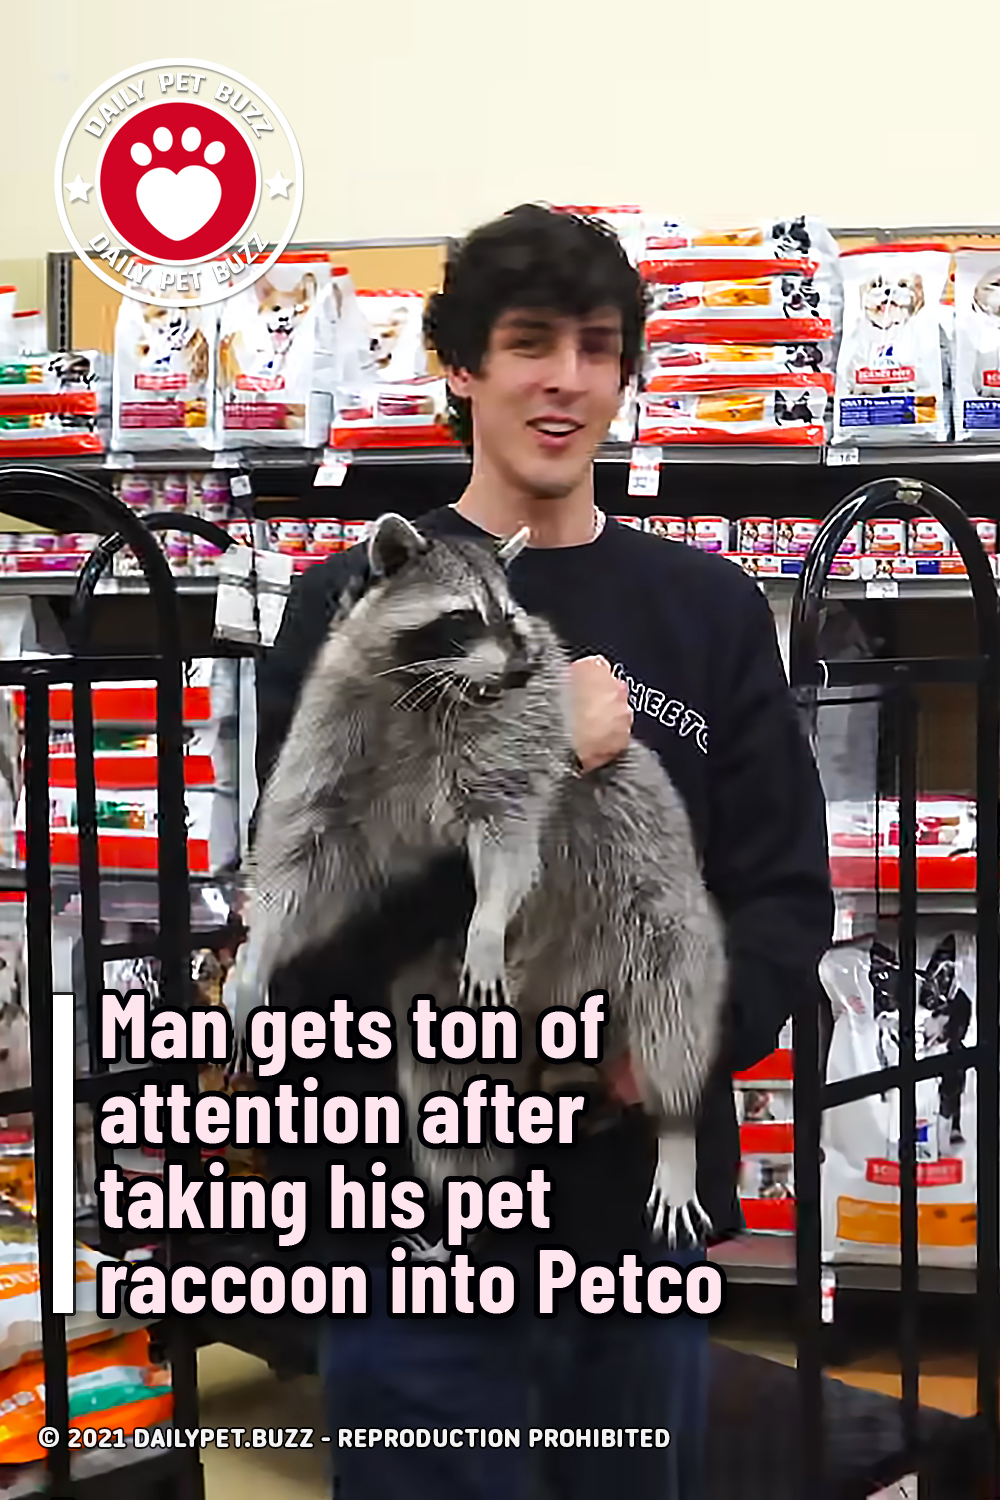 Man gets ton of attention after taking his pet raccoon into Petco